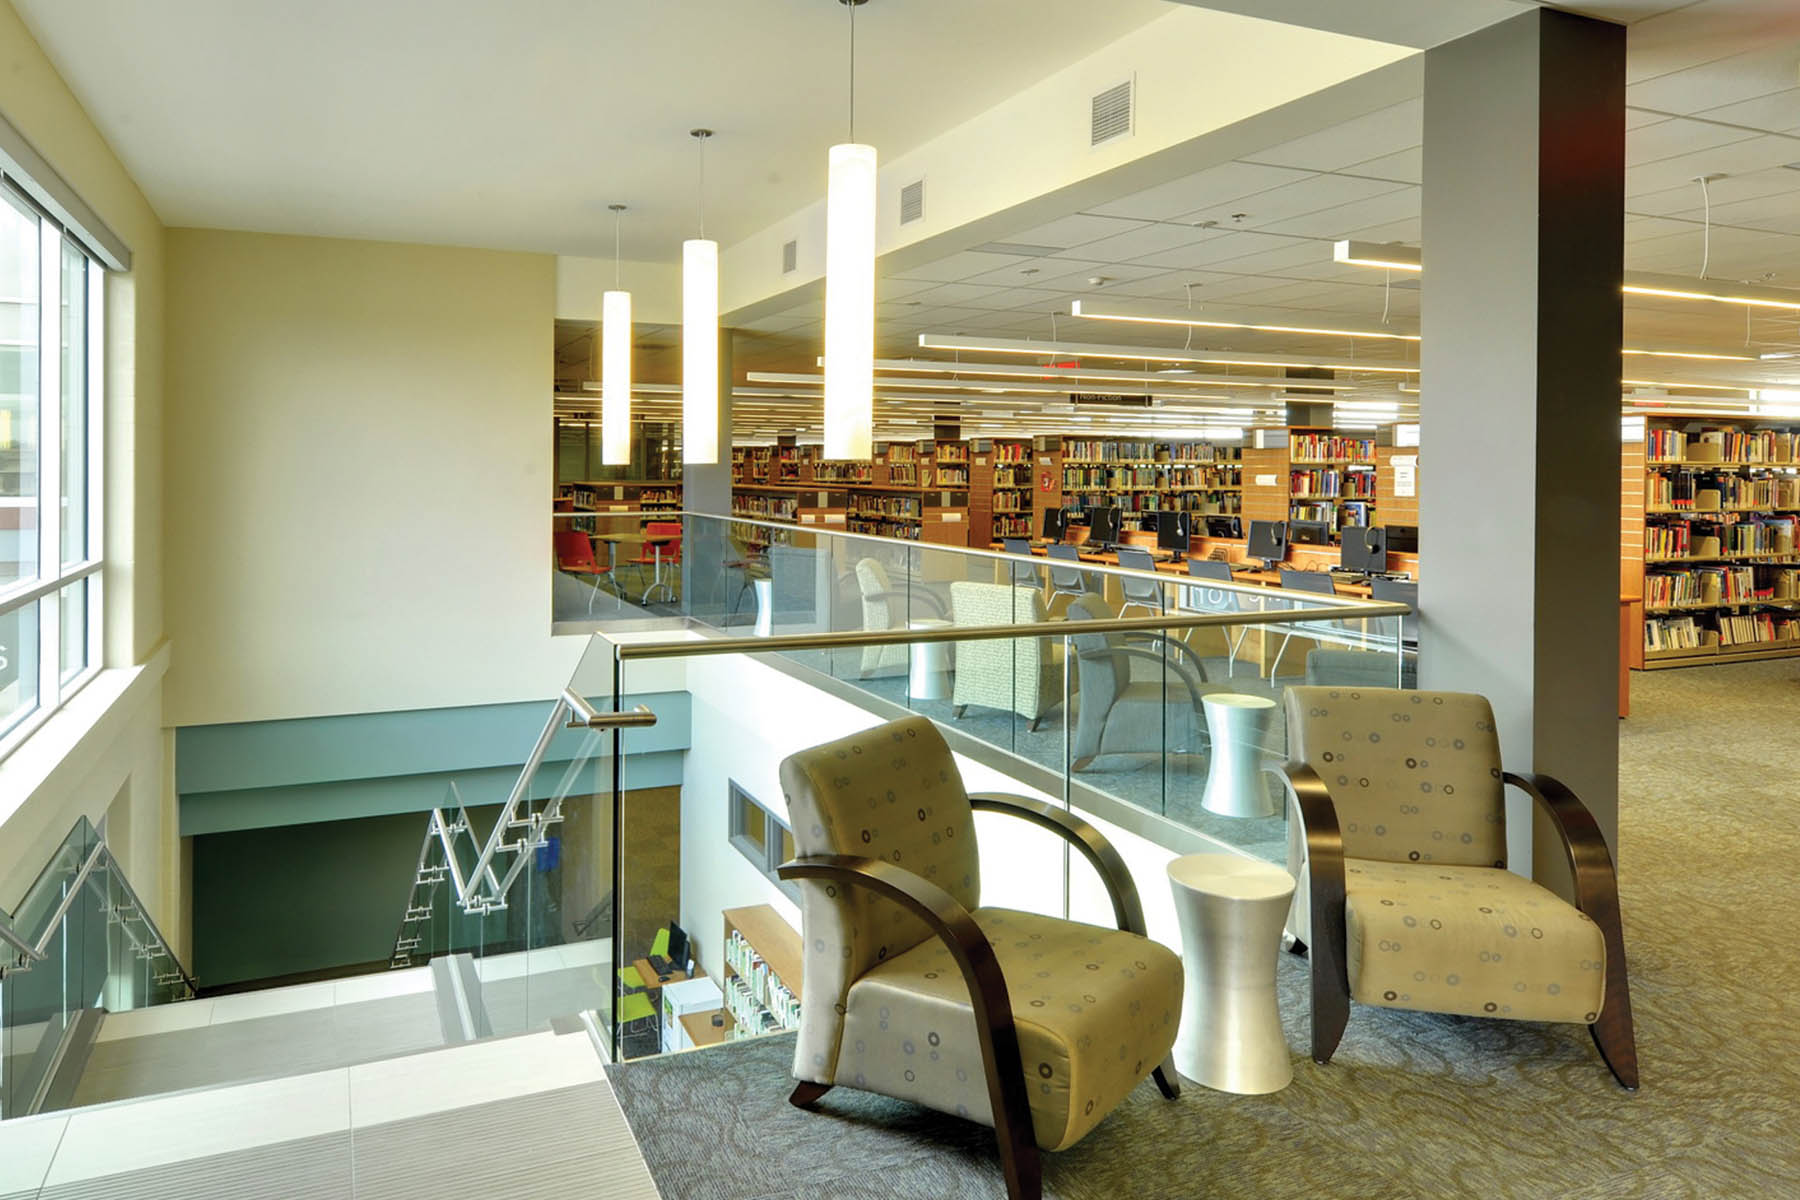 Lounge seating along top of double height staircase with large windows, glass guard rail and white pendant lighting and wood book shelves in rows